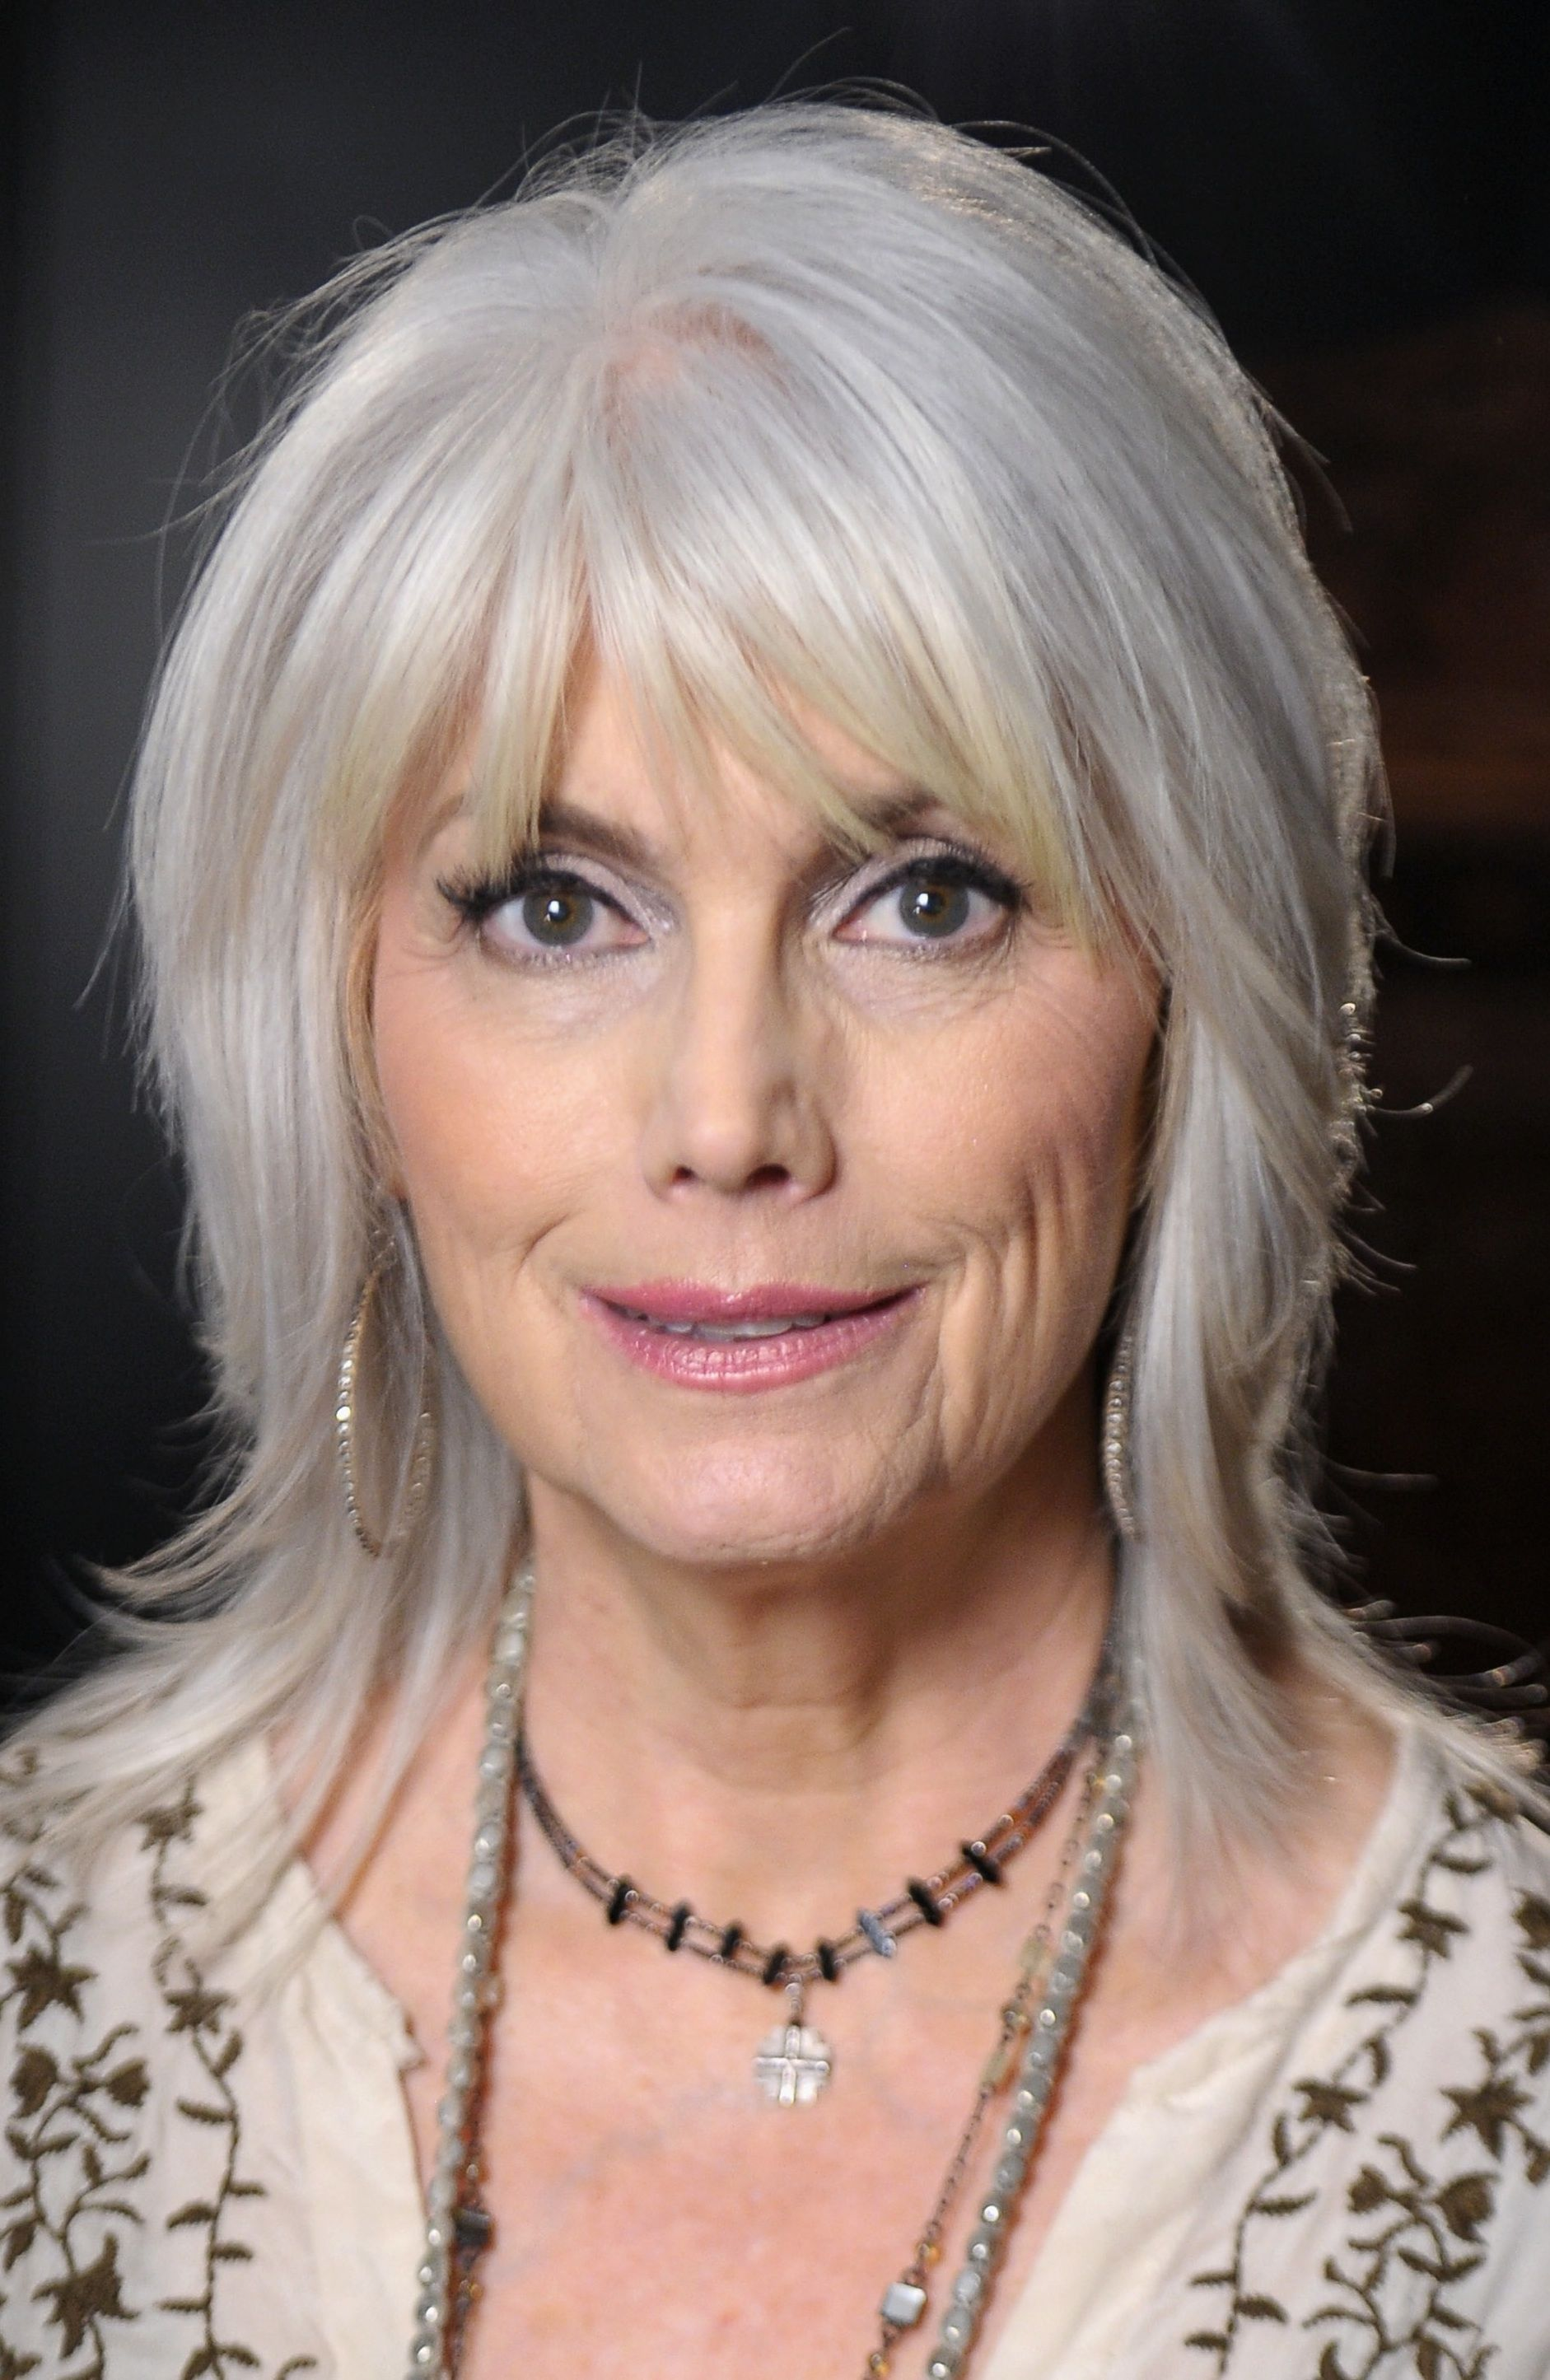 What Are Some Good Examples of Shag Haircuts? | Emmylou harris ...